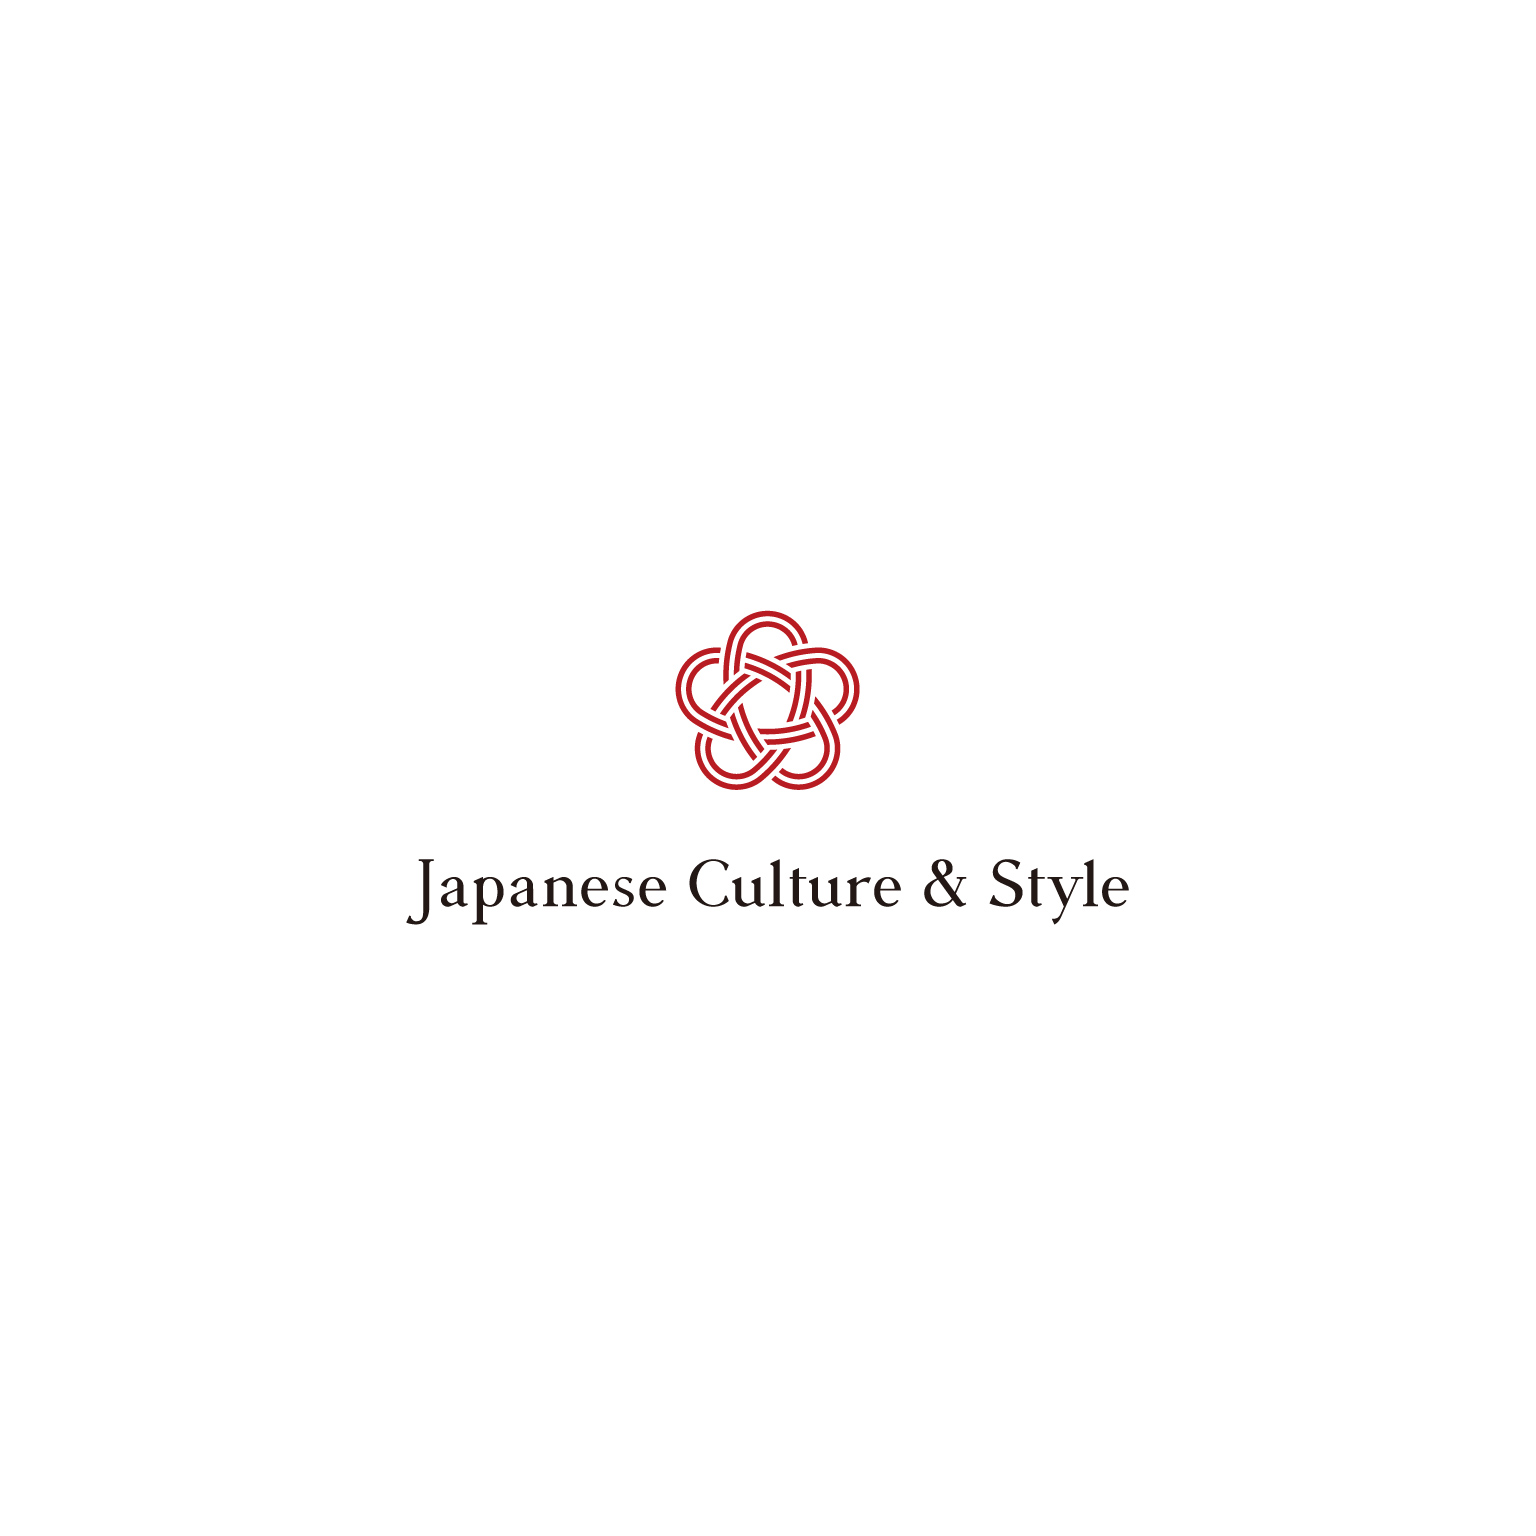 Japanese Culture & Style Logo